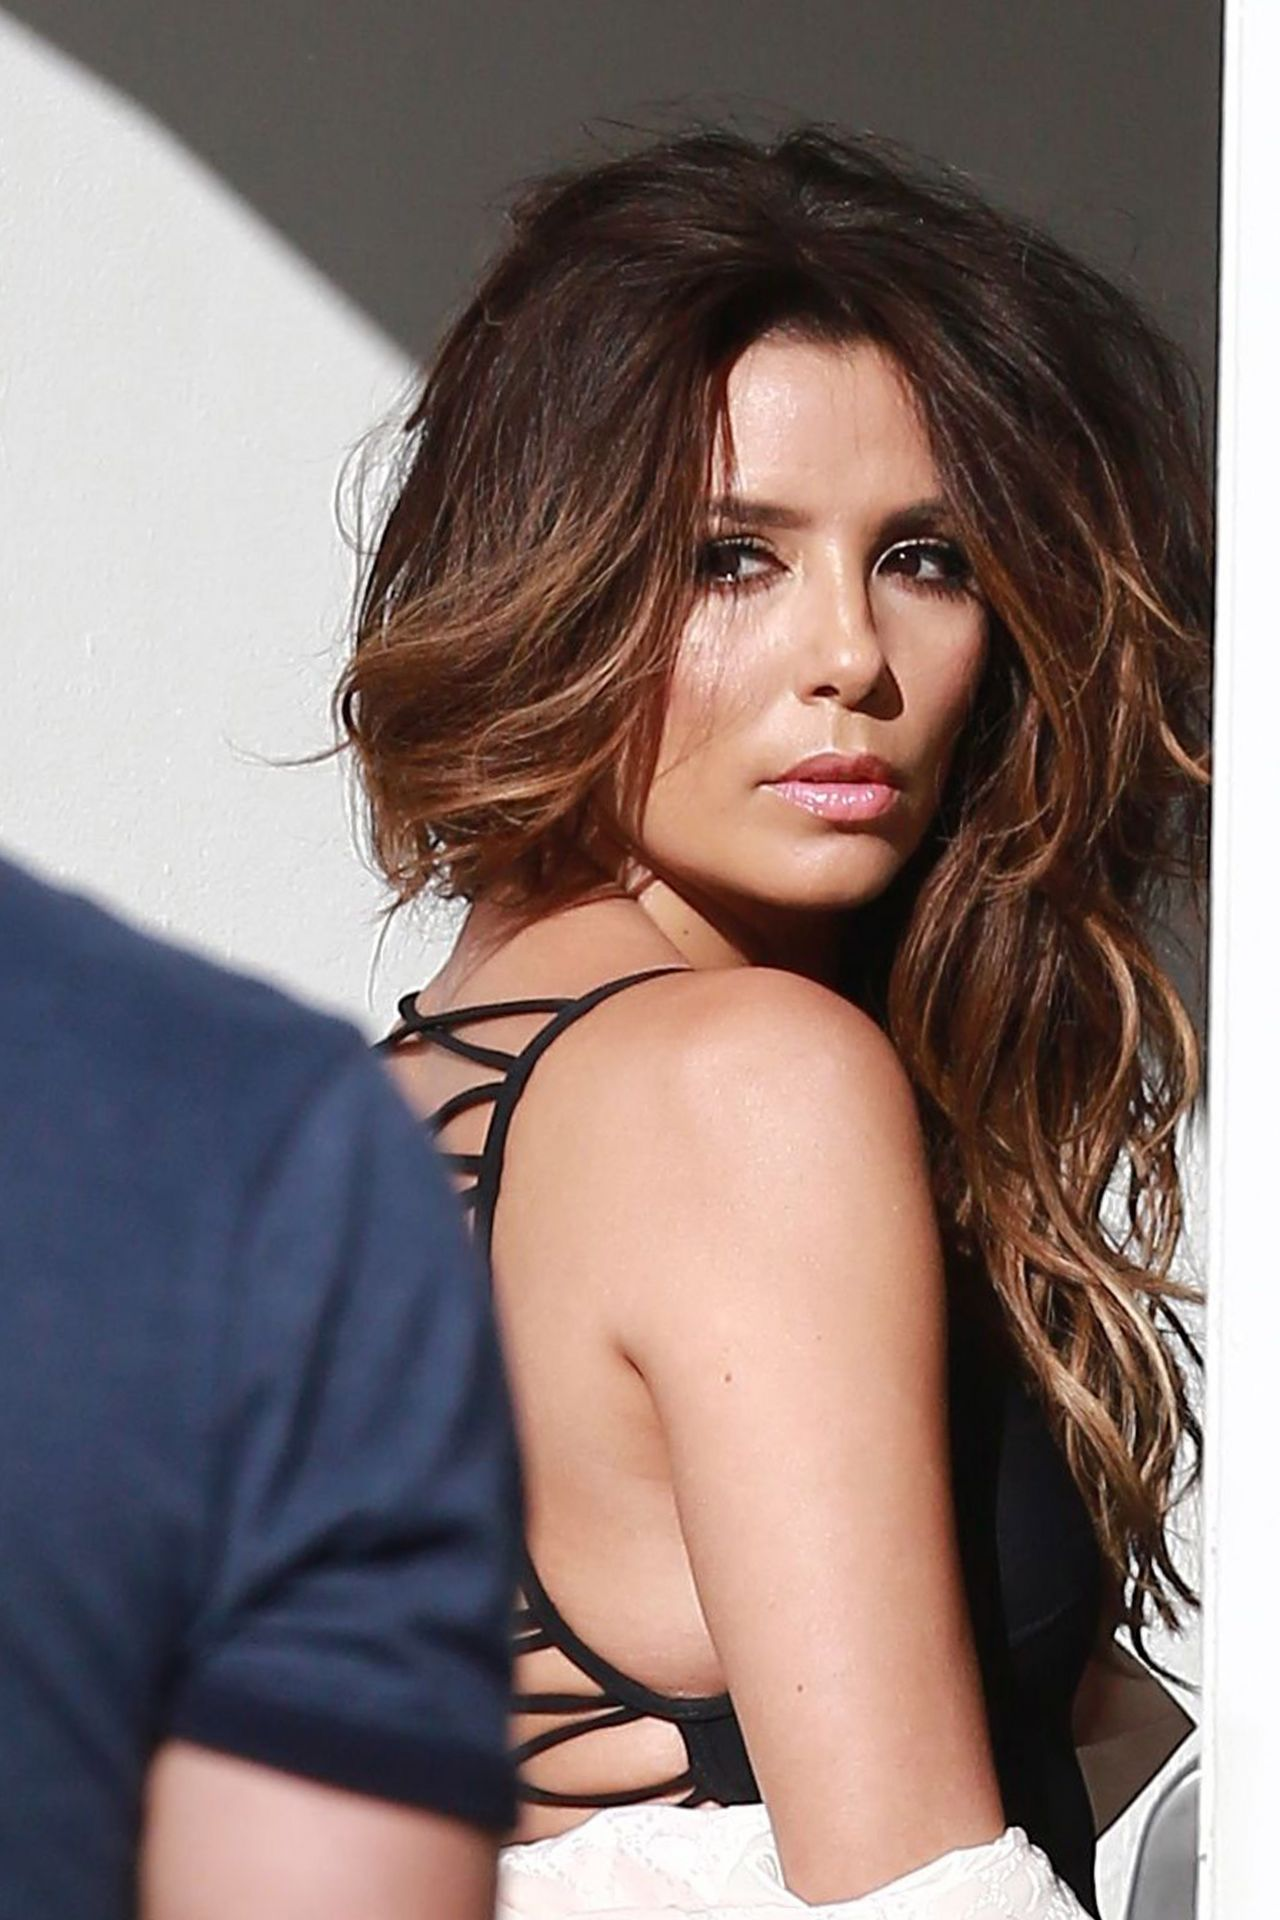 Eva Longoria in Swimsuits - Photoshoot Outside MILK ... Eva Longoria